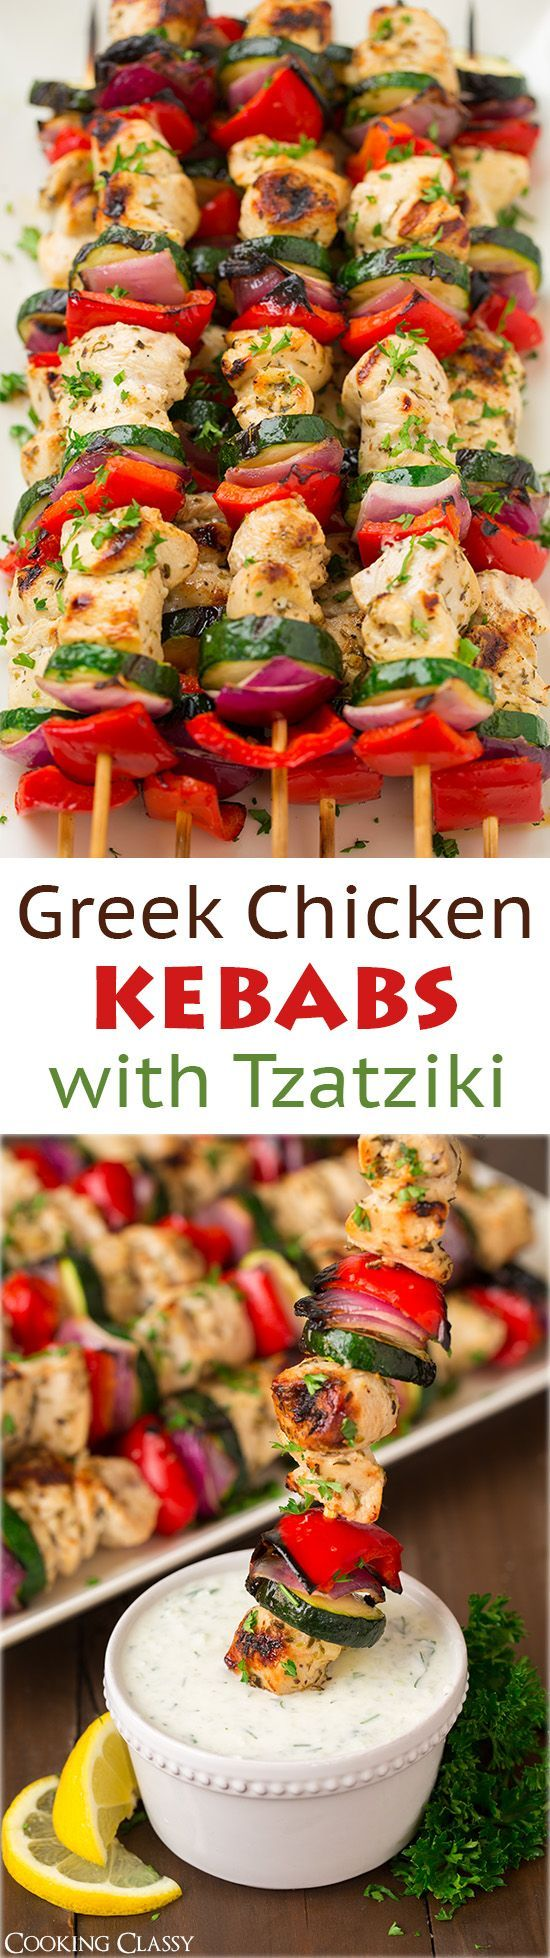 Greek Chicken Kebabs with Tzatziki Sauce - I could live on these! Theyre so flavorful and theyre healthy! Greek food at its best.